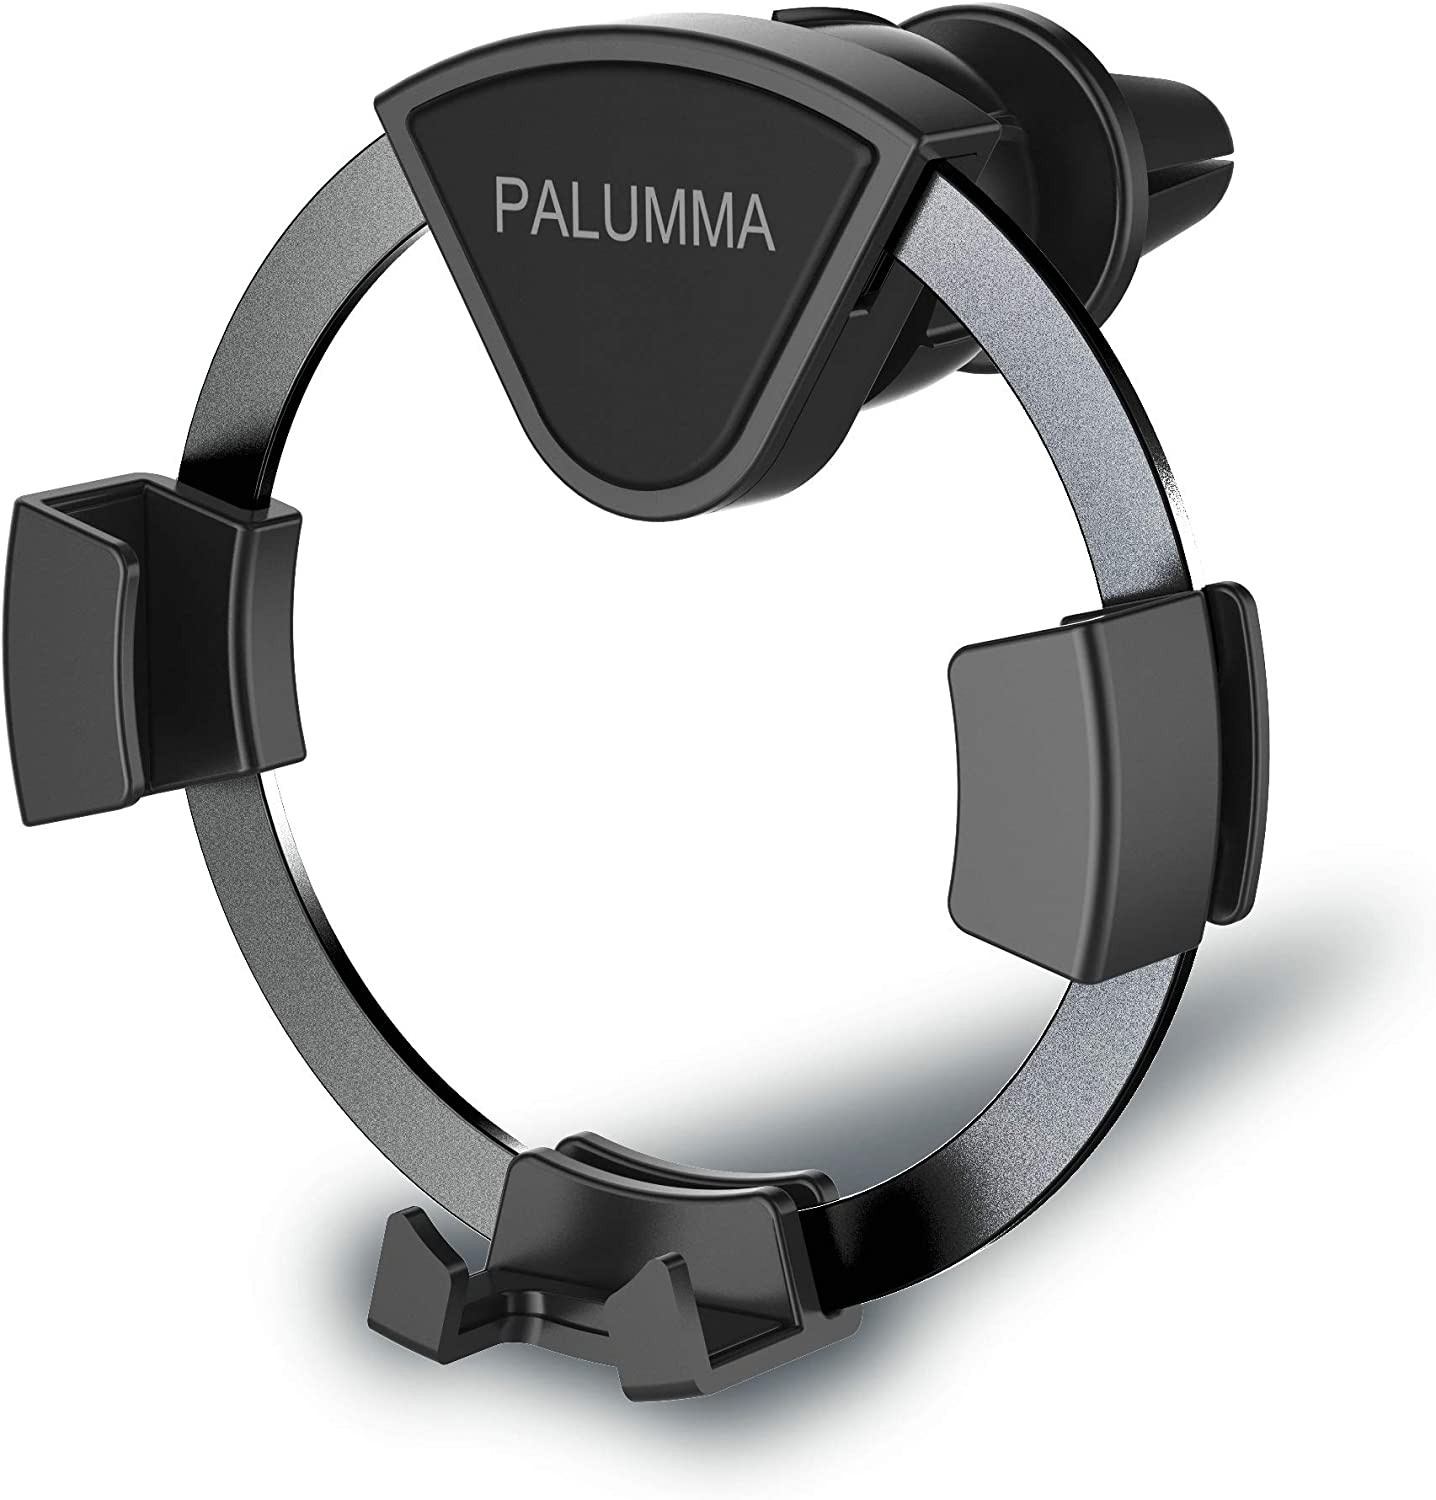 Palumma Air Vent Car Phone Holder, Auto-Clamping Handsfree Cellphone Encircling Gravity Car Mount Cradle Compatible with iPhone XS/X/8/7/6s/Plus, Samsung Note 9/ S9/S9 Plus/S8, LG, Sony, HTC